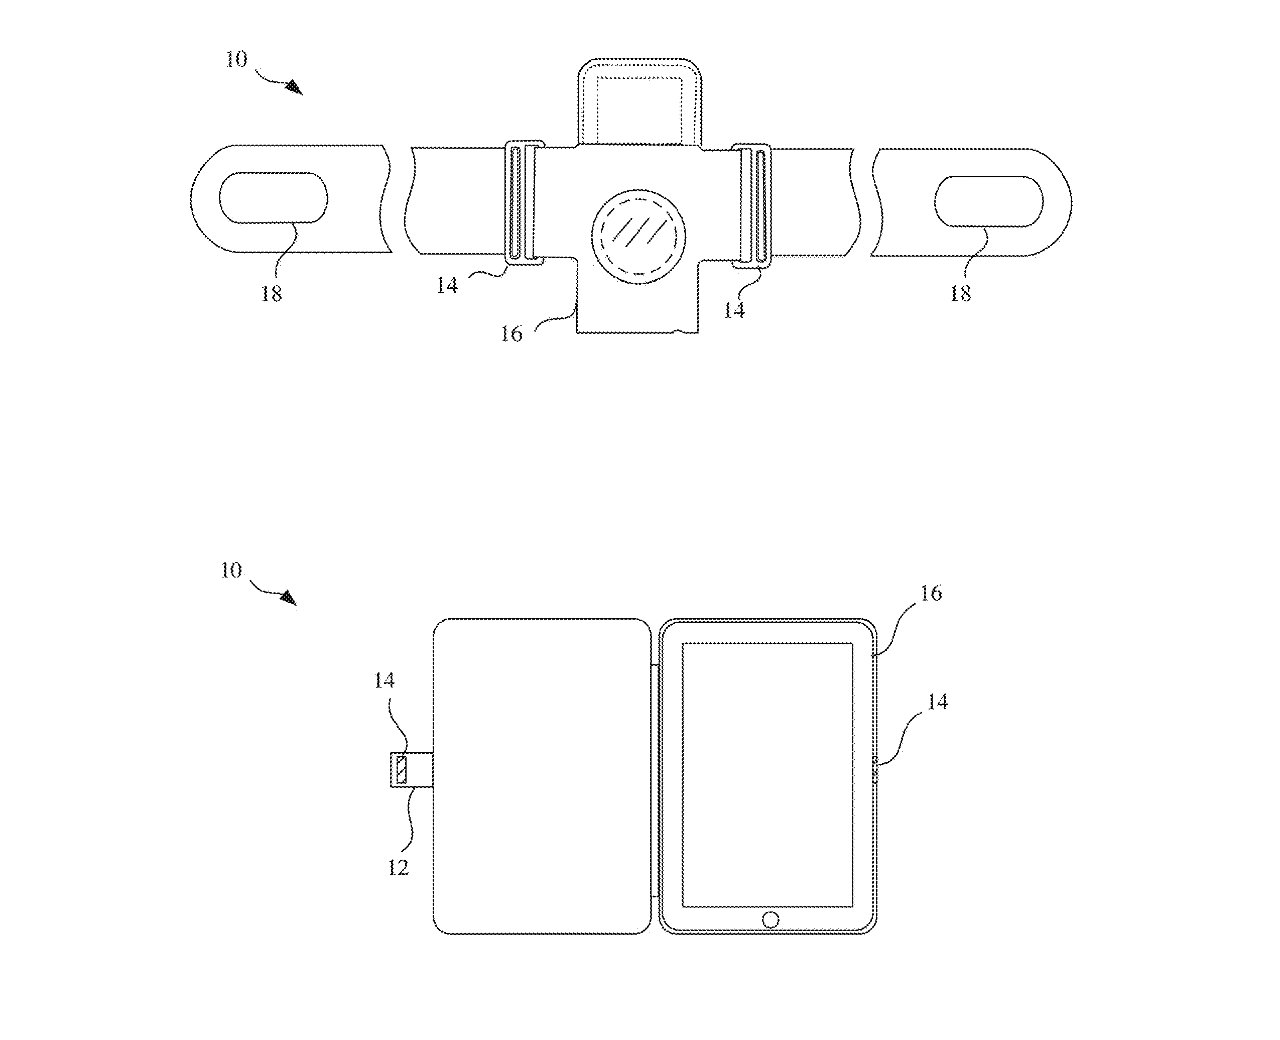 Detail from the patent application showing two possible uses of magnets in devices